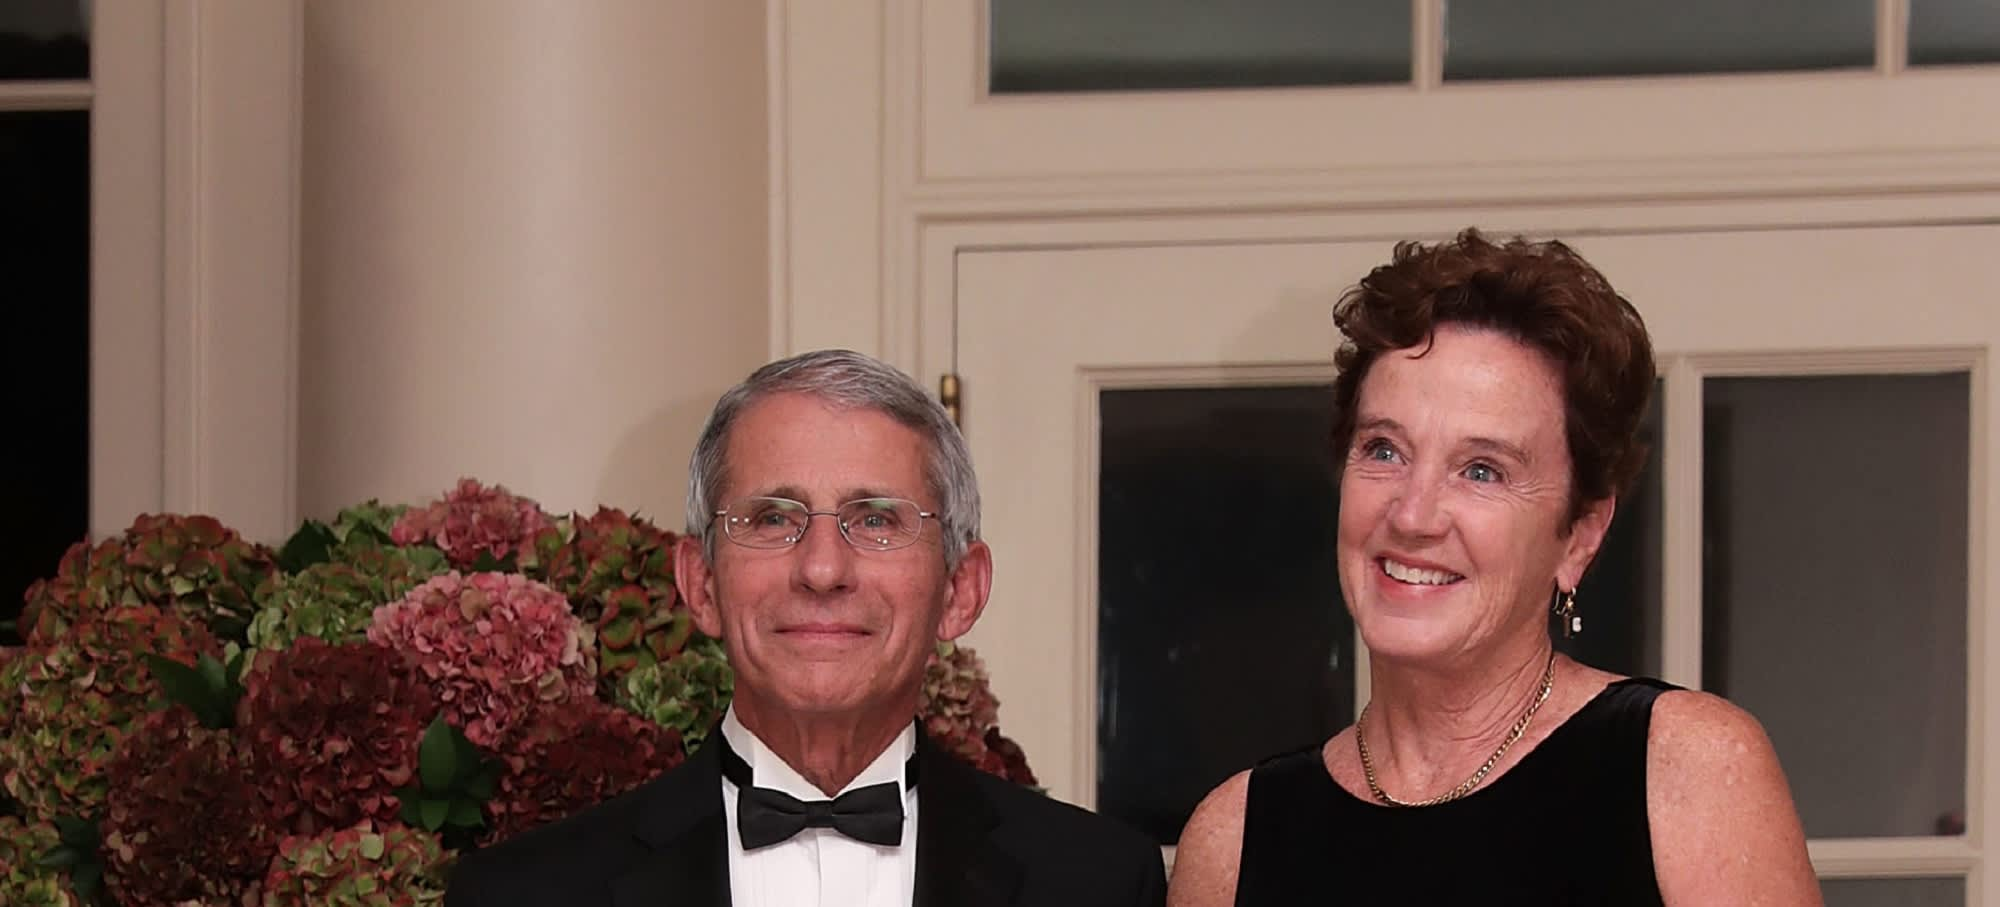 White House advisor Anthony Fauci's wife on his hectic schedule